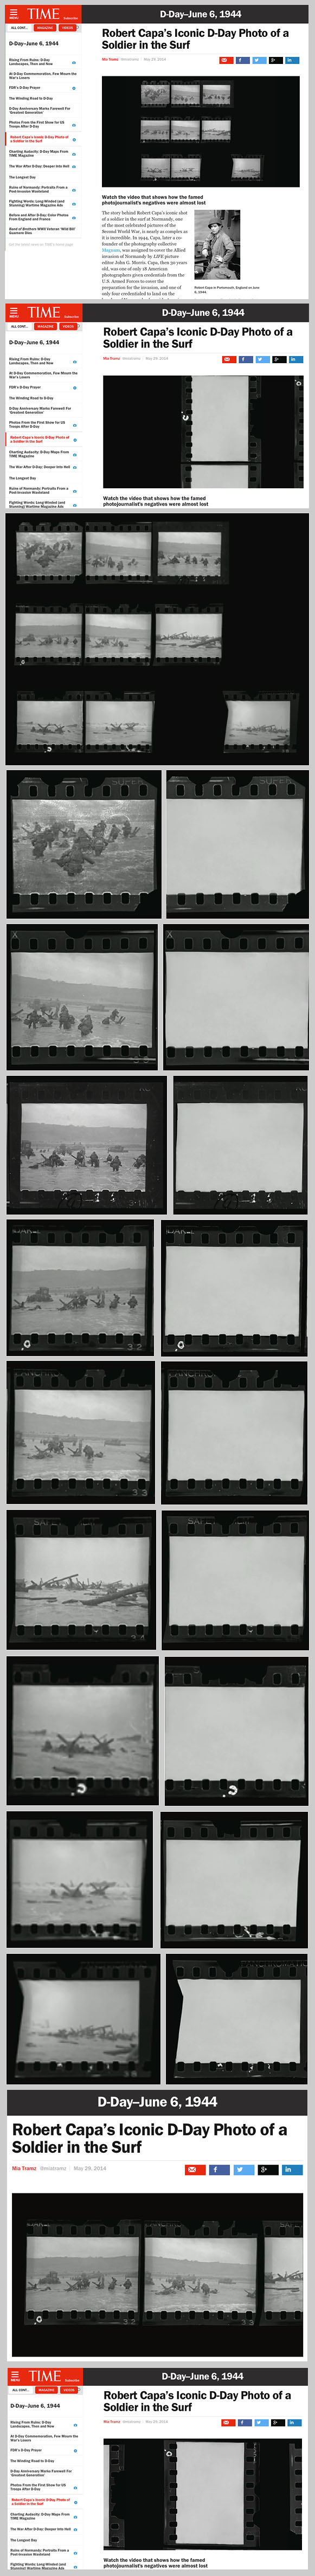 Robert Capa, fake D-DAY negatives from 2014 TIME video. Comparison screenshots and composite design by Rob McElroy.